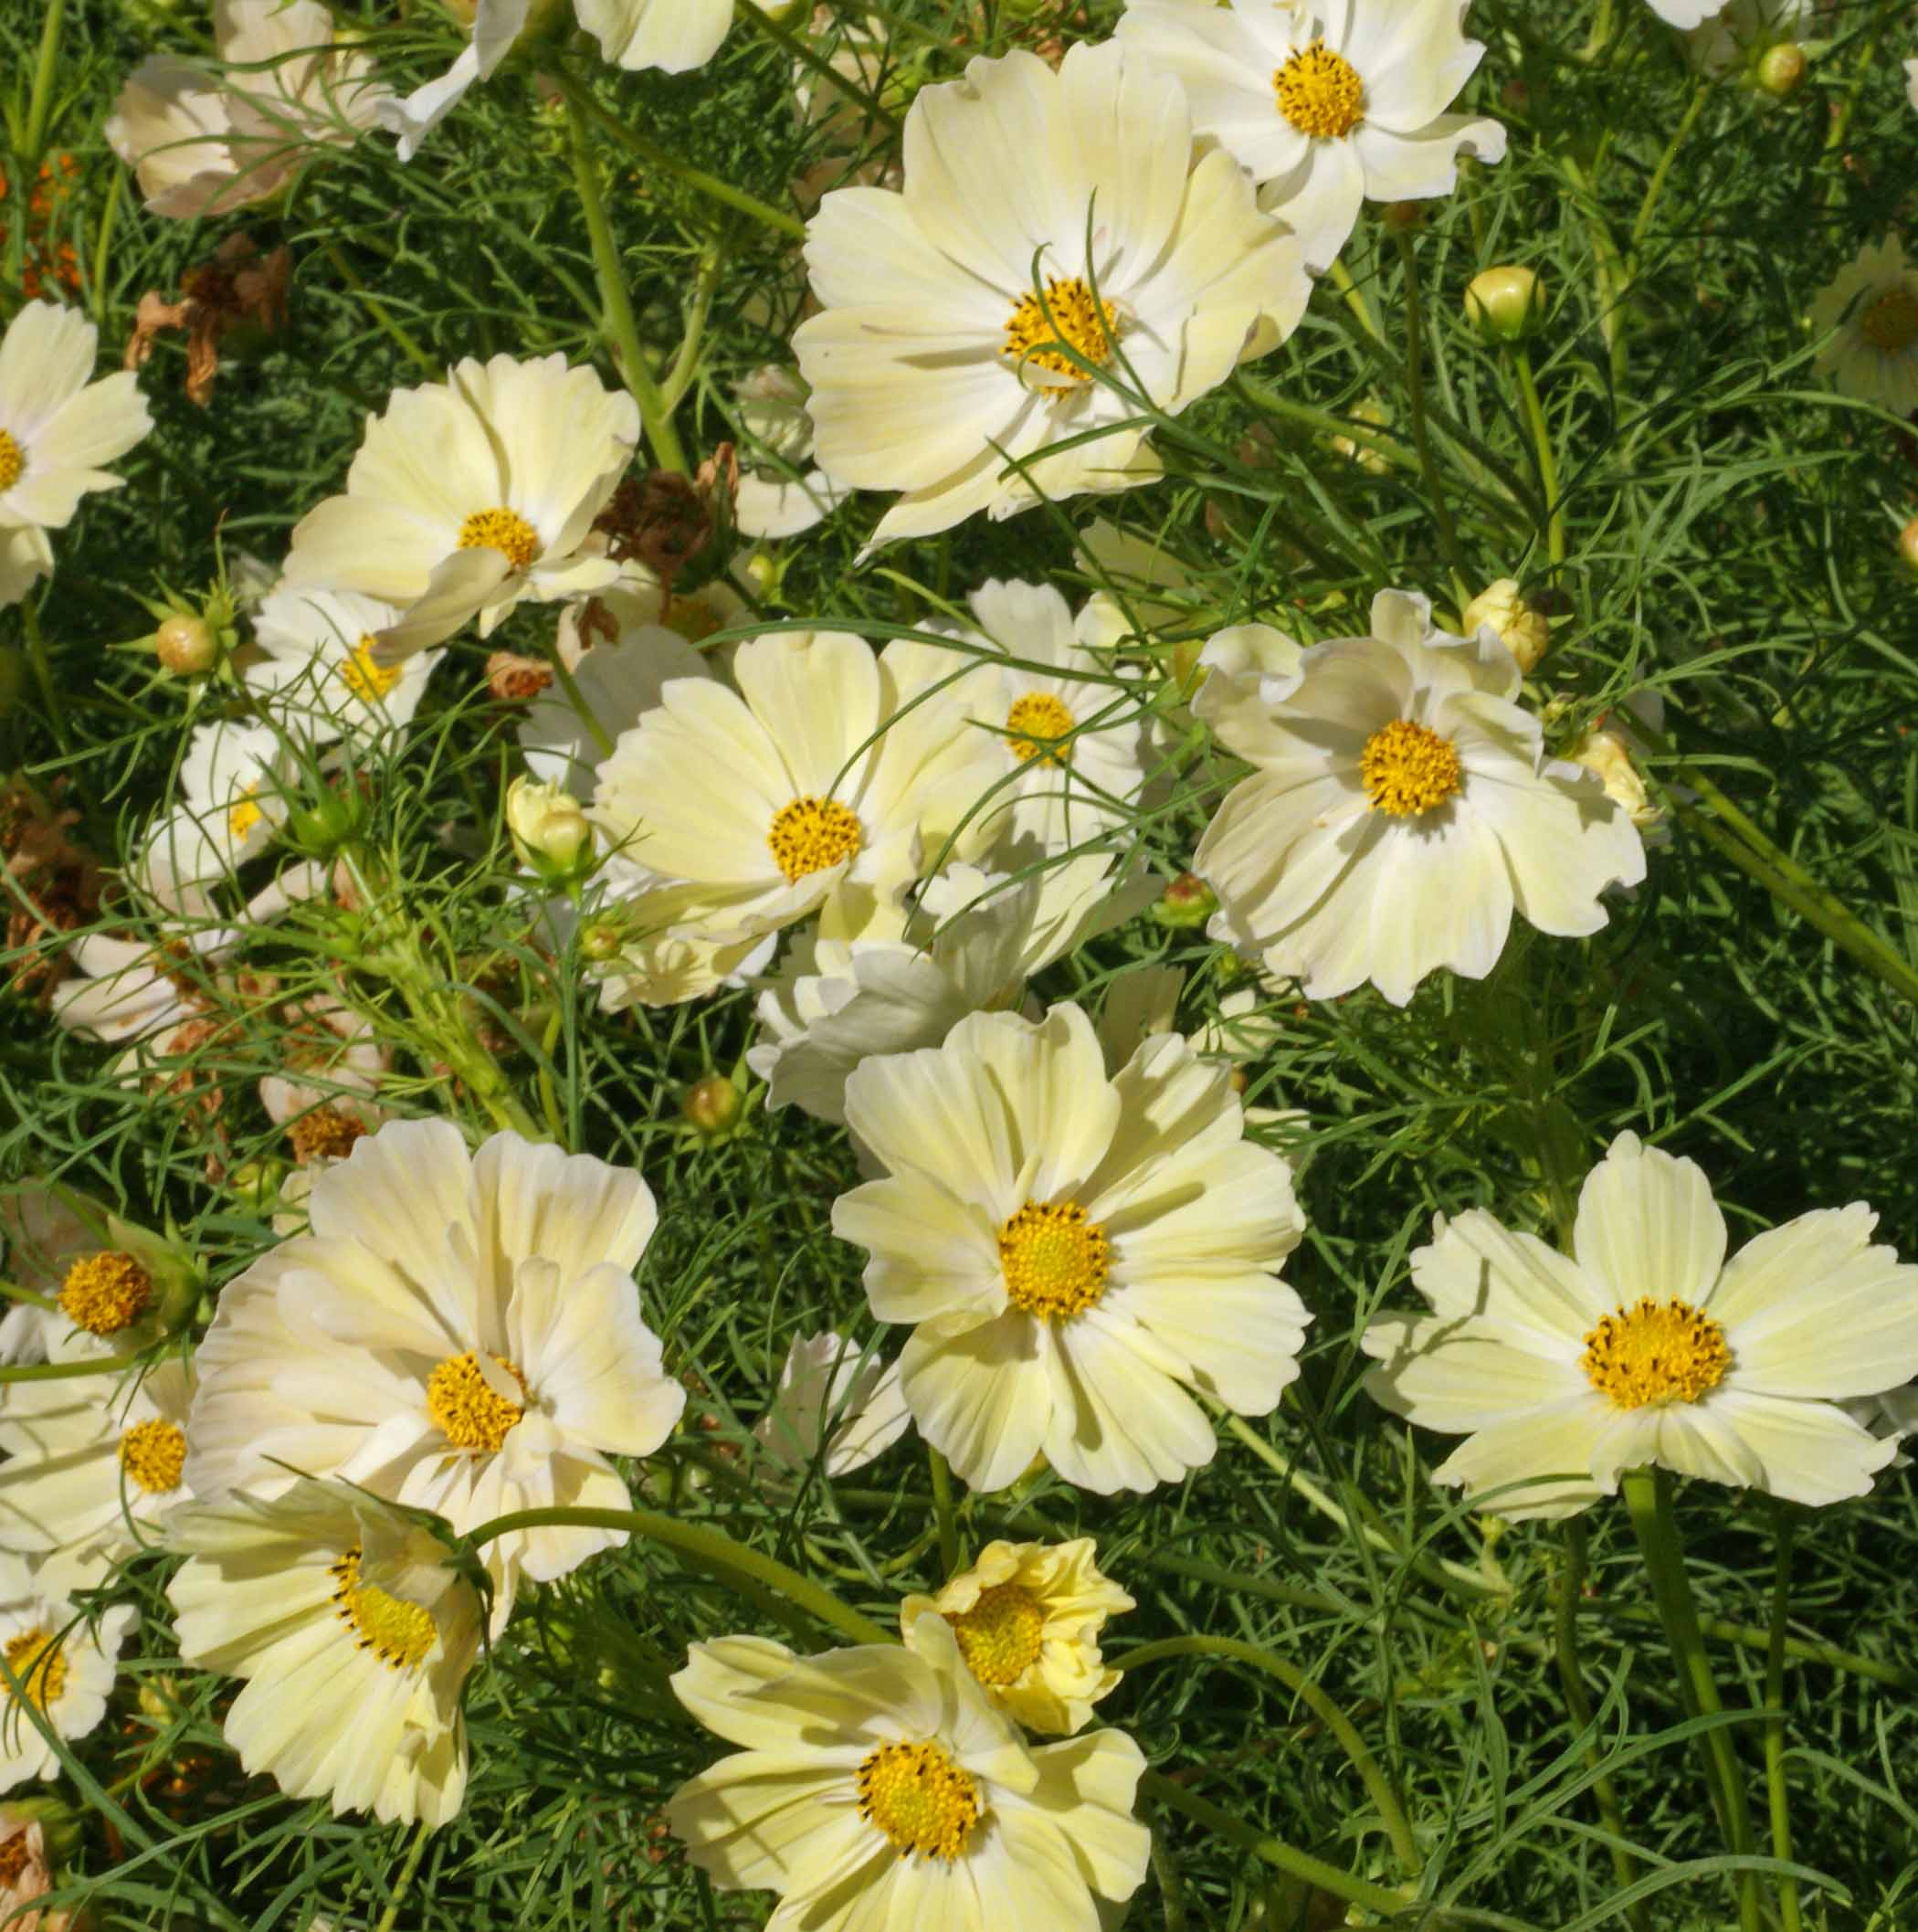 Yellow cosmos cosmos bipinnatus applewood seed company additional information mightylinksfo